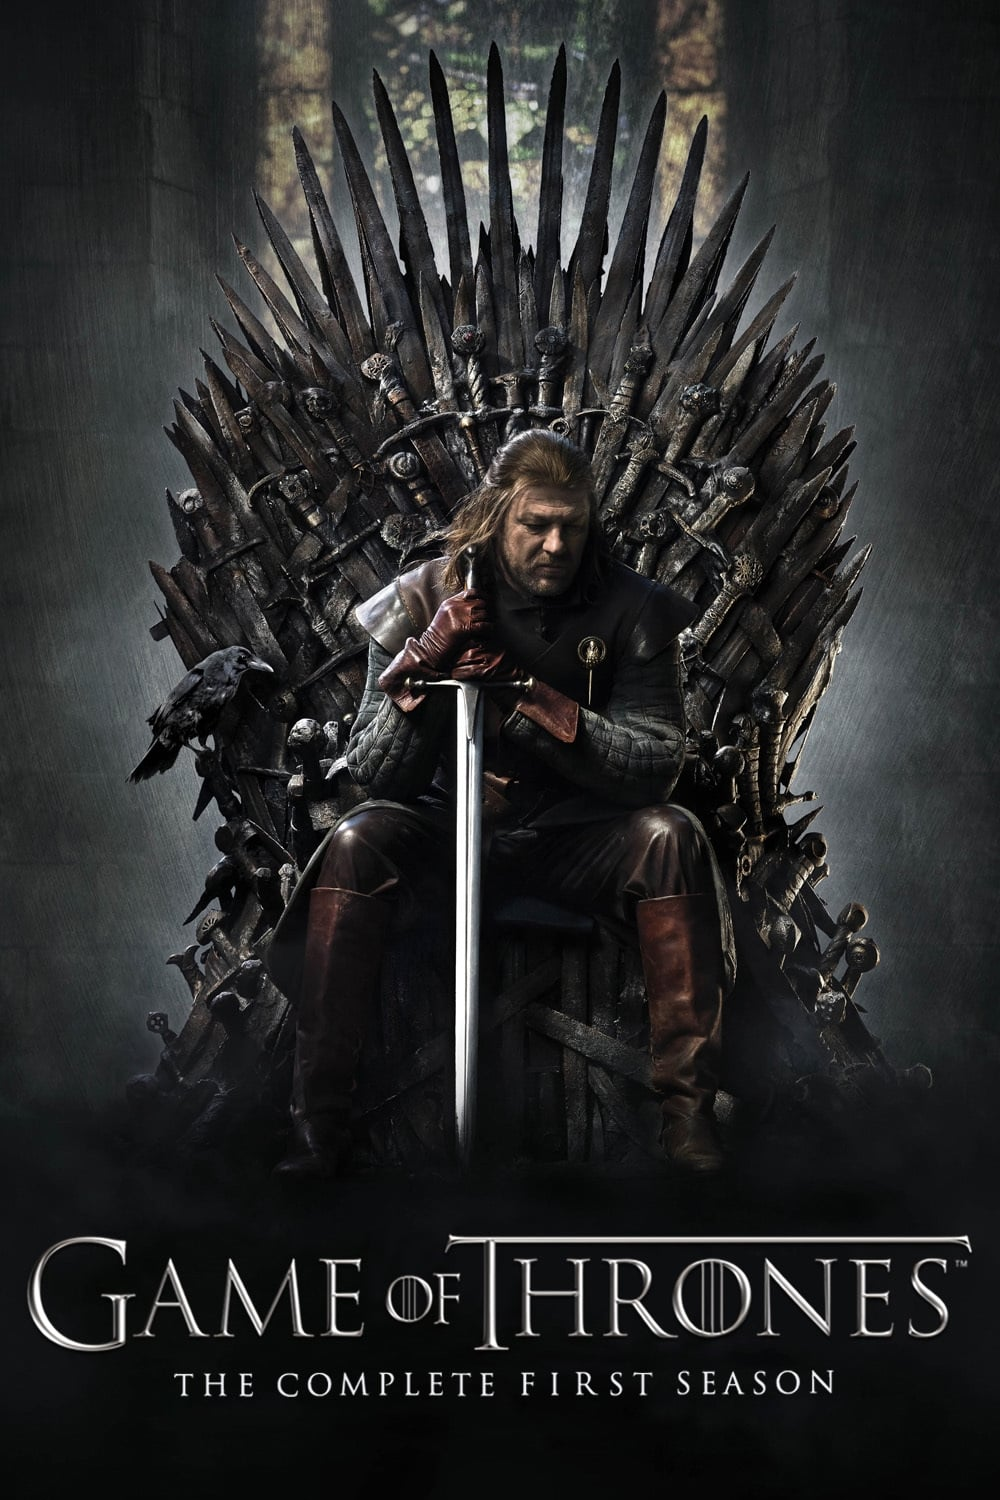 http://grado-it.eu/game-of-thrones-1a-temporada-2011-bdrip-bluray-720p-torrent-dual-audio/